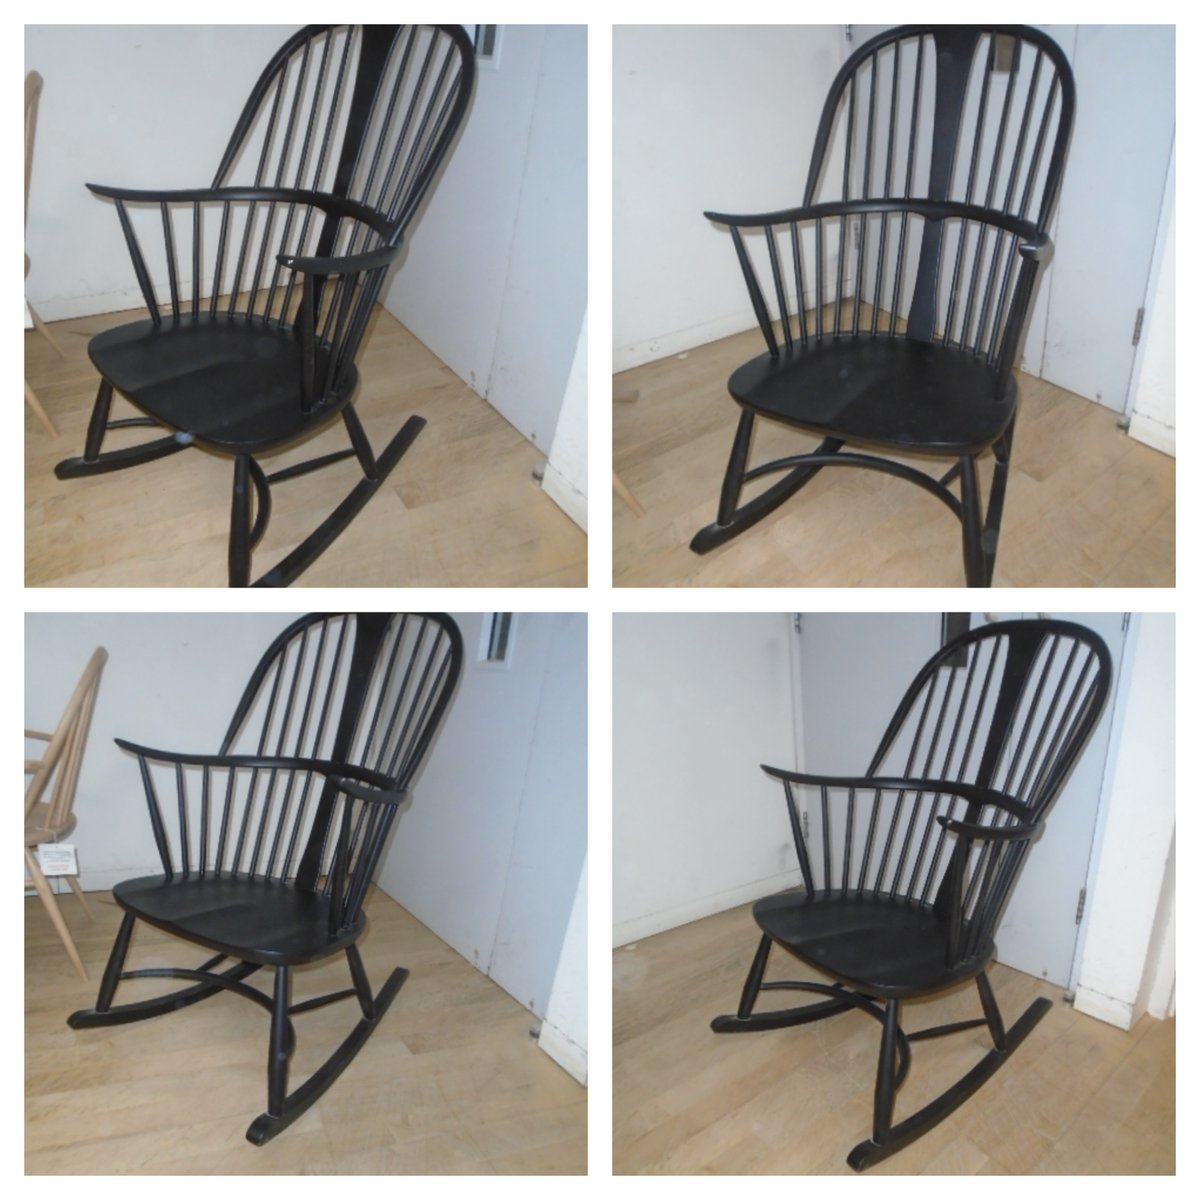 #efo  #ercol  #clearance  #originals  #7912bk  #chairmakers   #rocker  #black   £560  #free  #delivery   efo@ercol.com https://t.co/rNA7YZaN4V